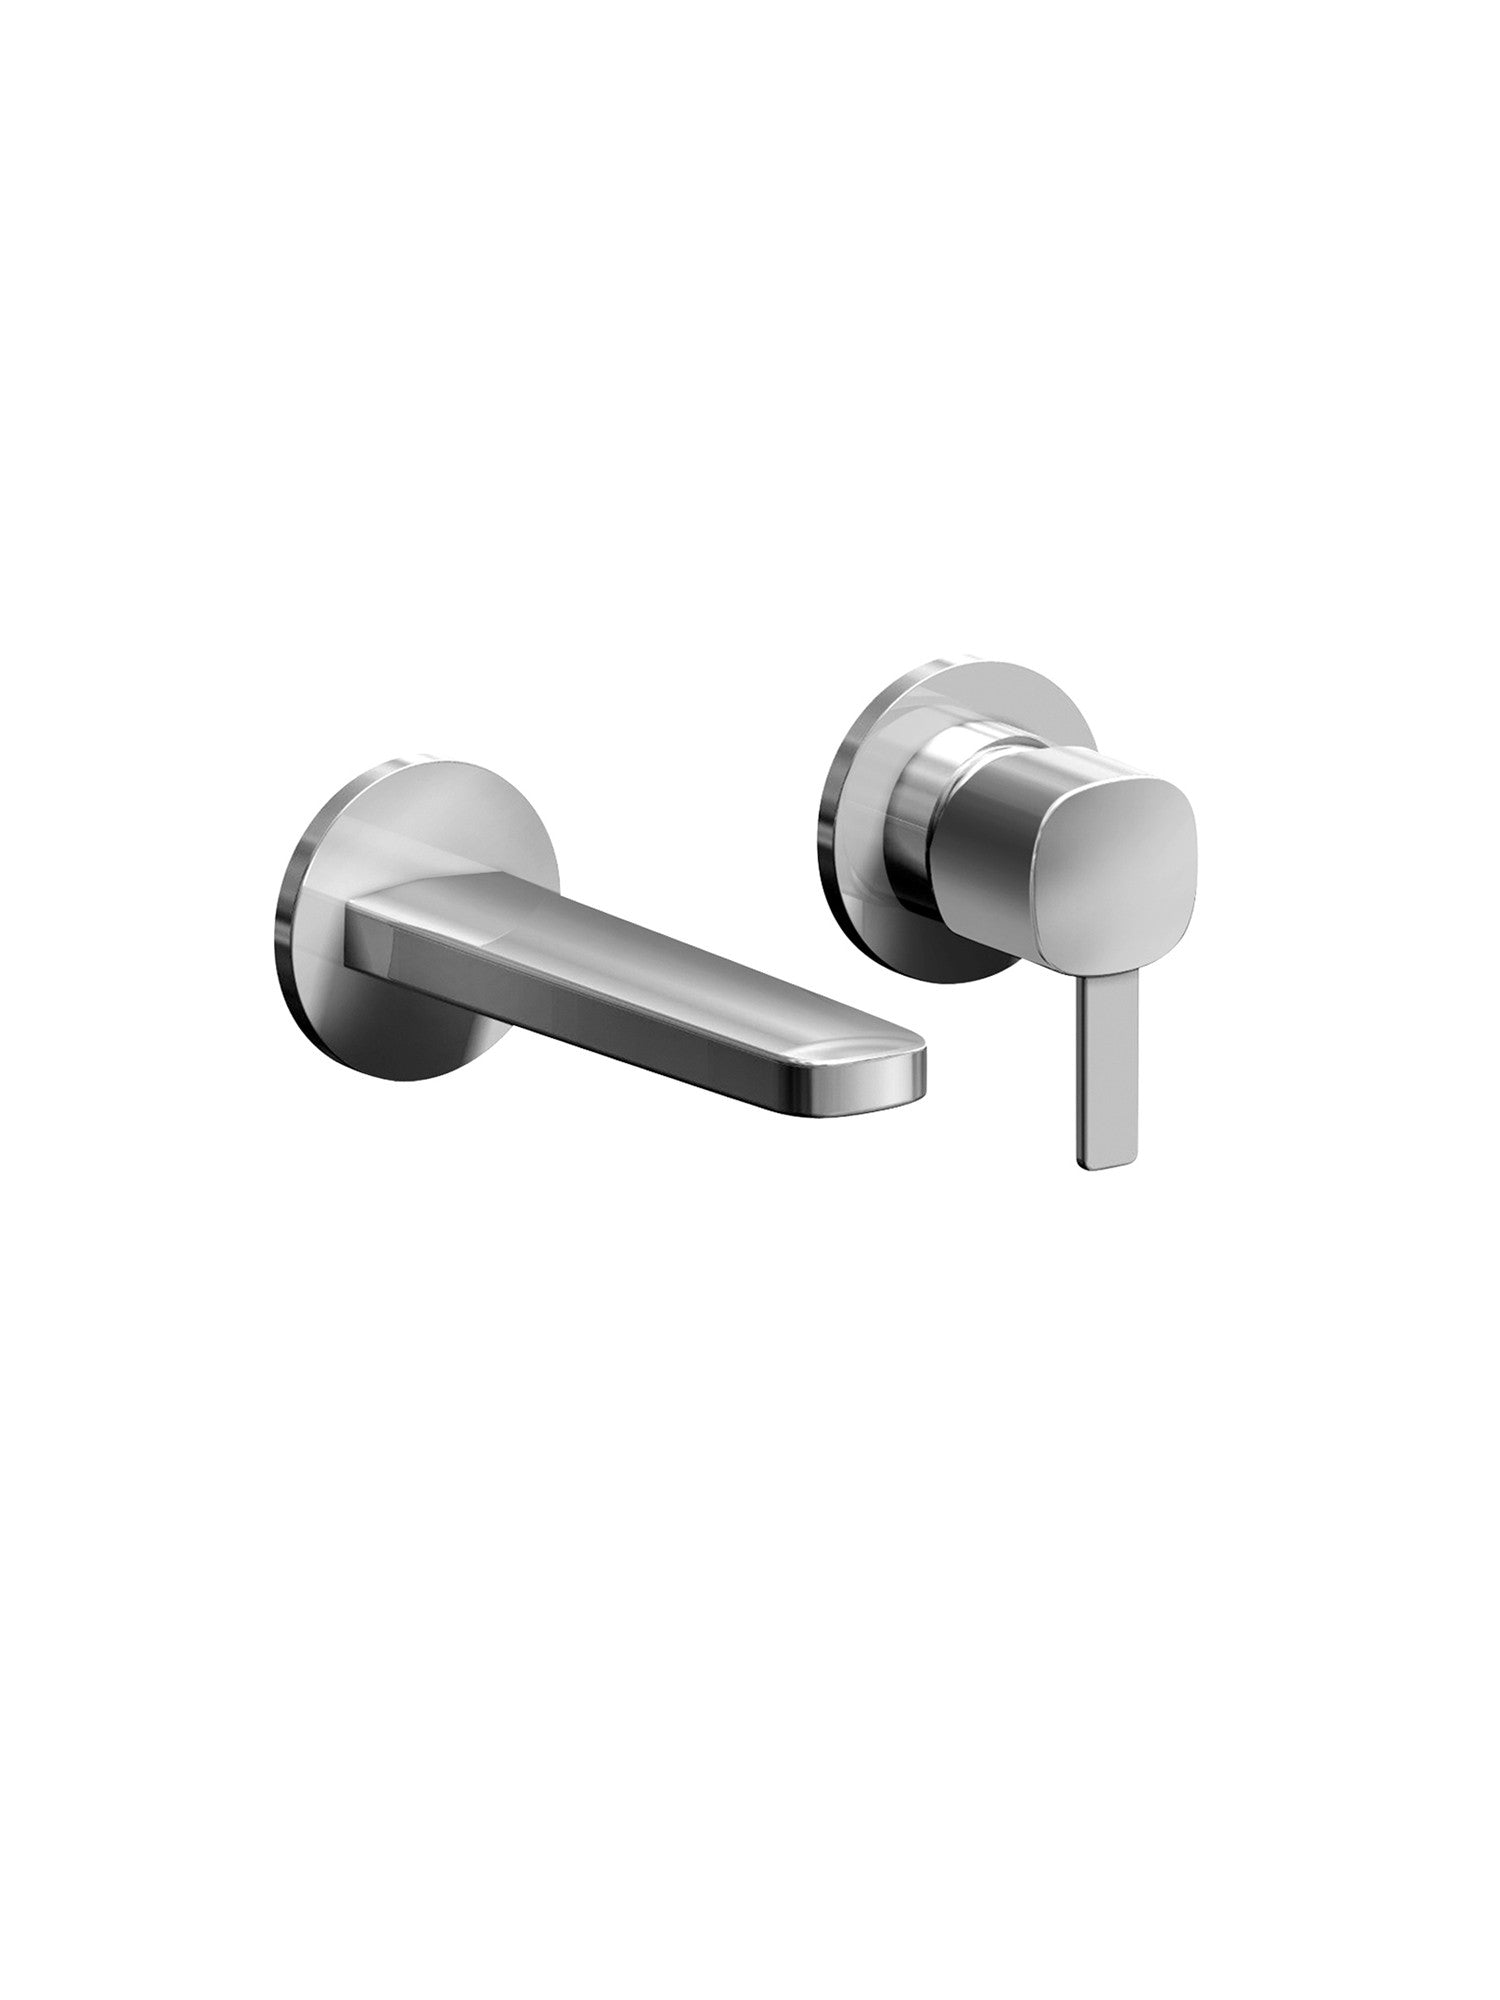 Lamé Wall-Mounted Basin Mixer 150mm Spout #GPM109B